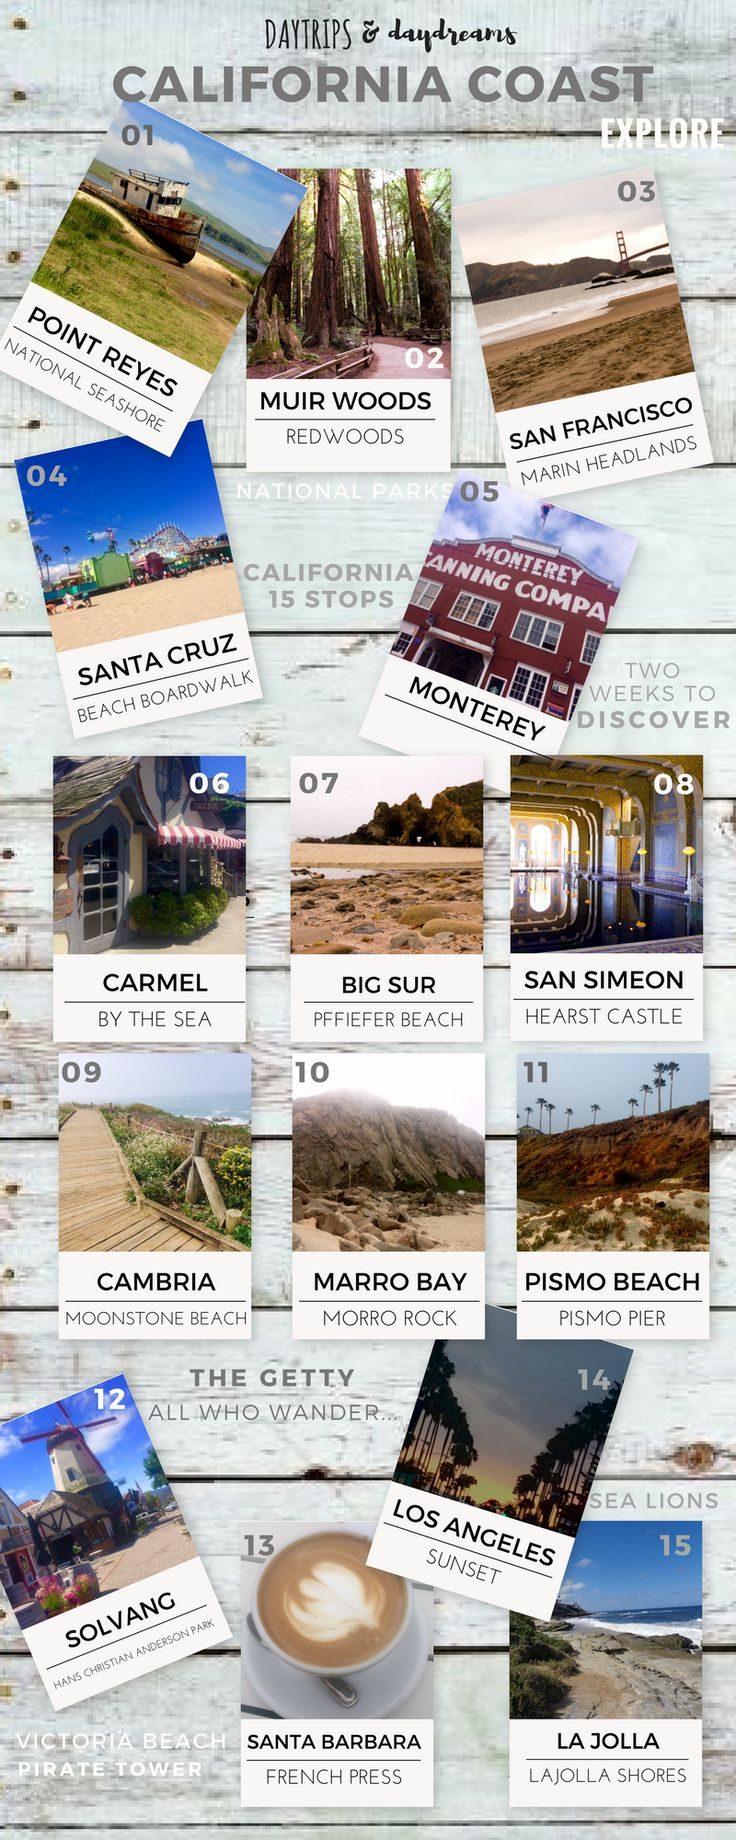 California Coast Map and Itinerary. 15 stops down the coast from San Francisco to LaJolla.